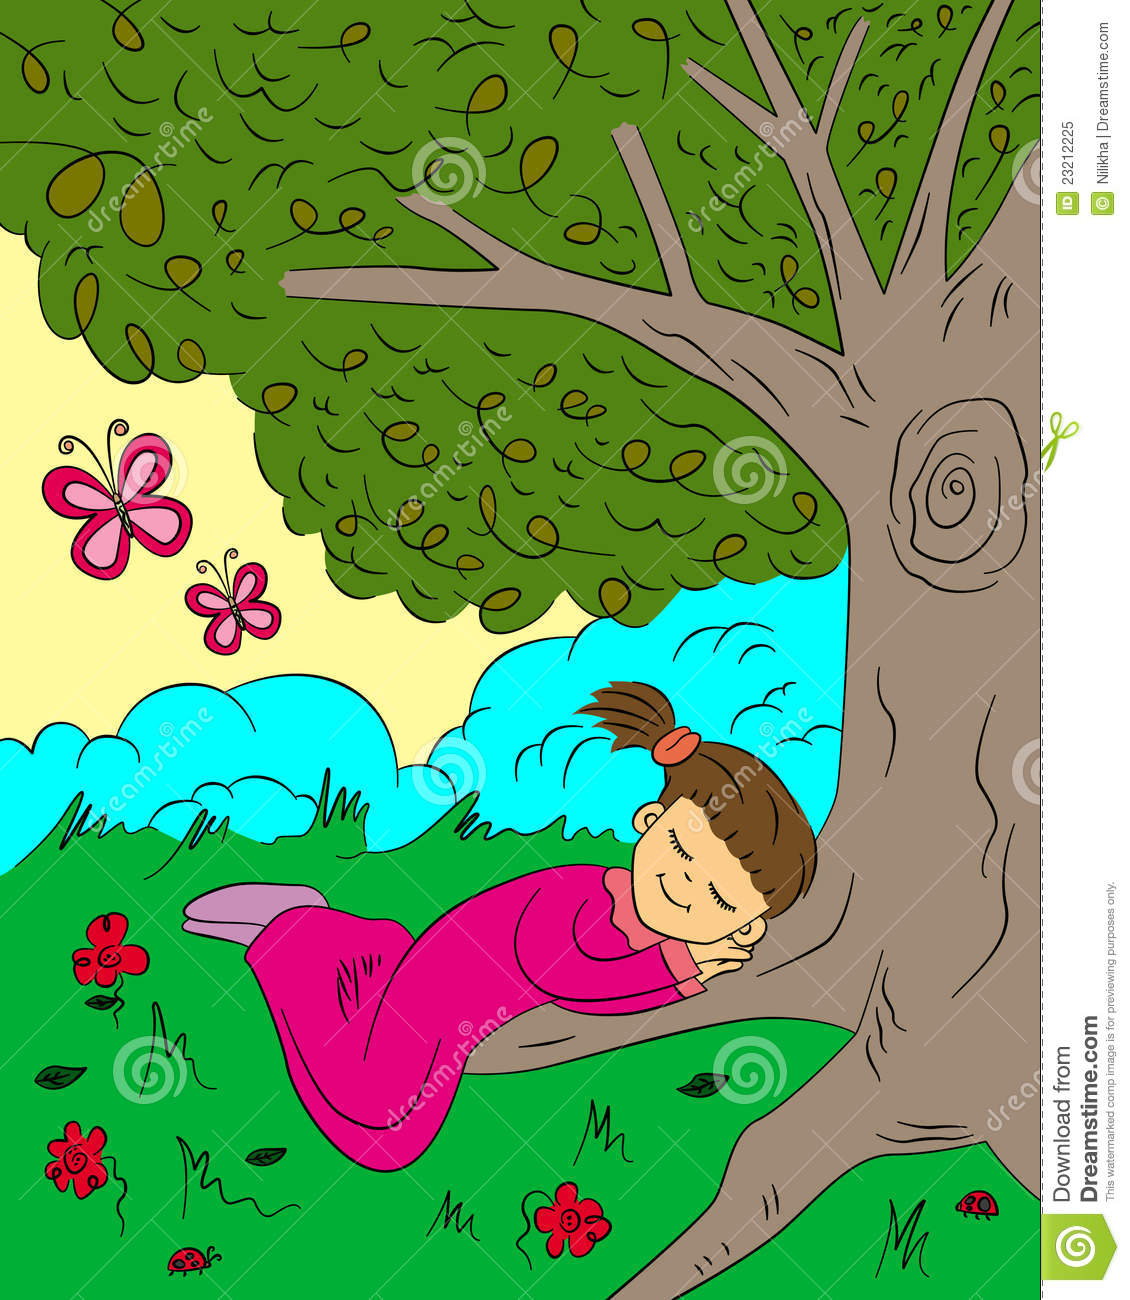 People sleeping in trees clipart.